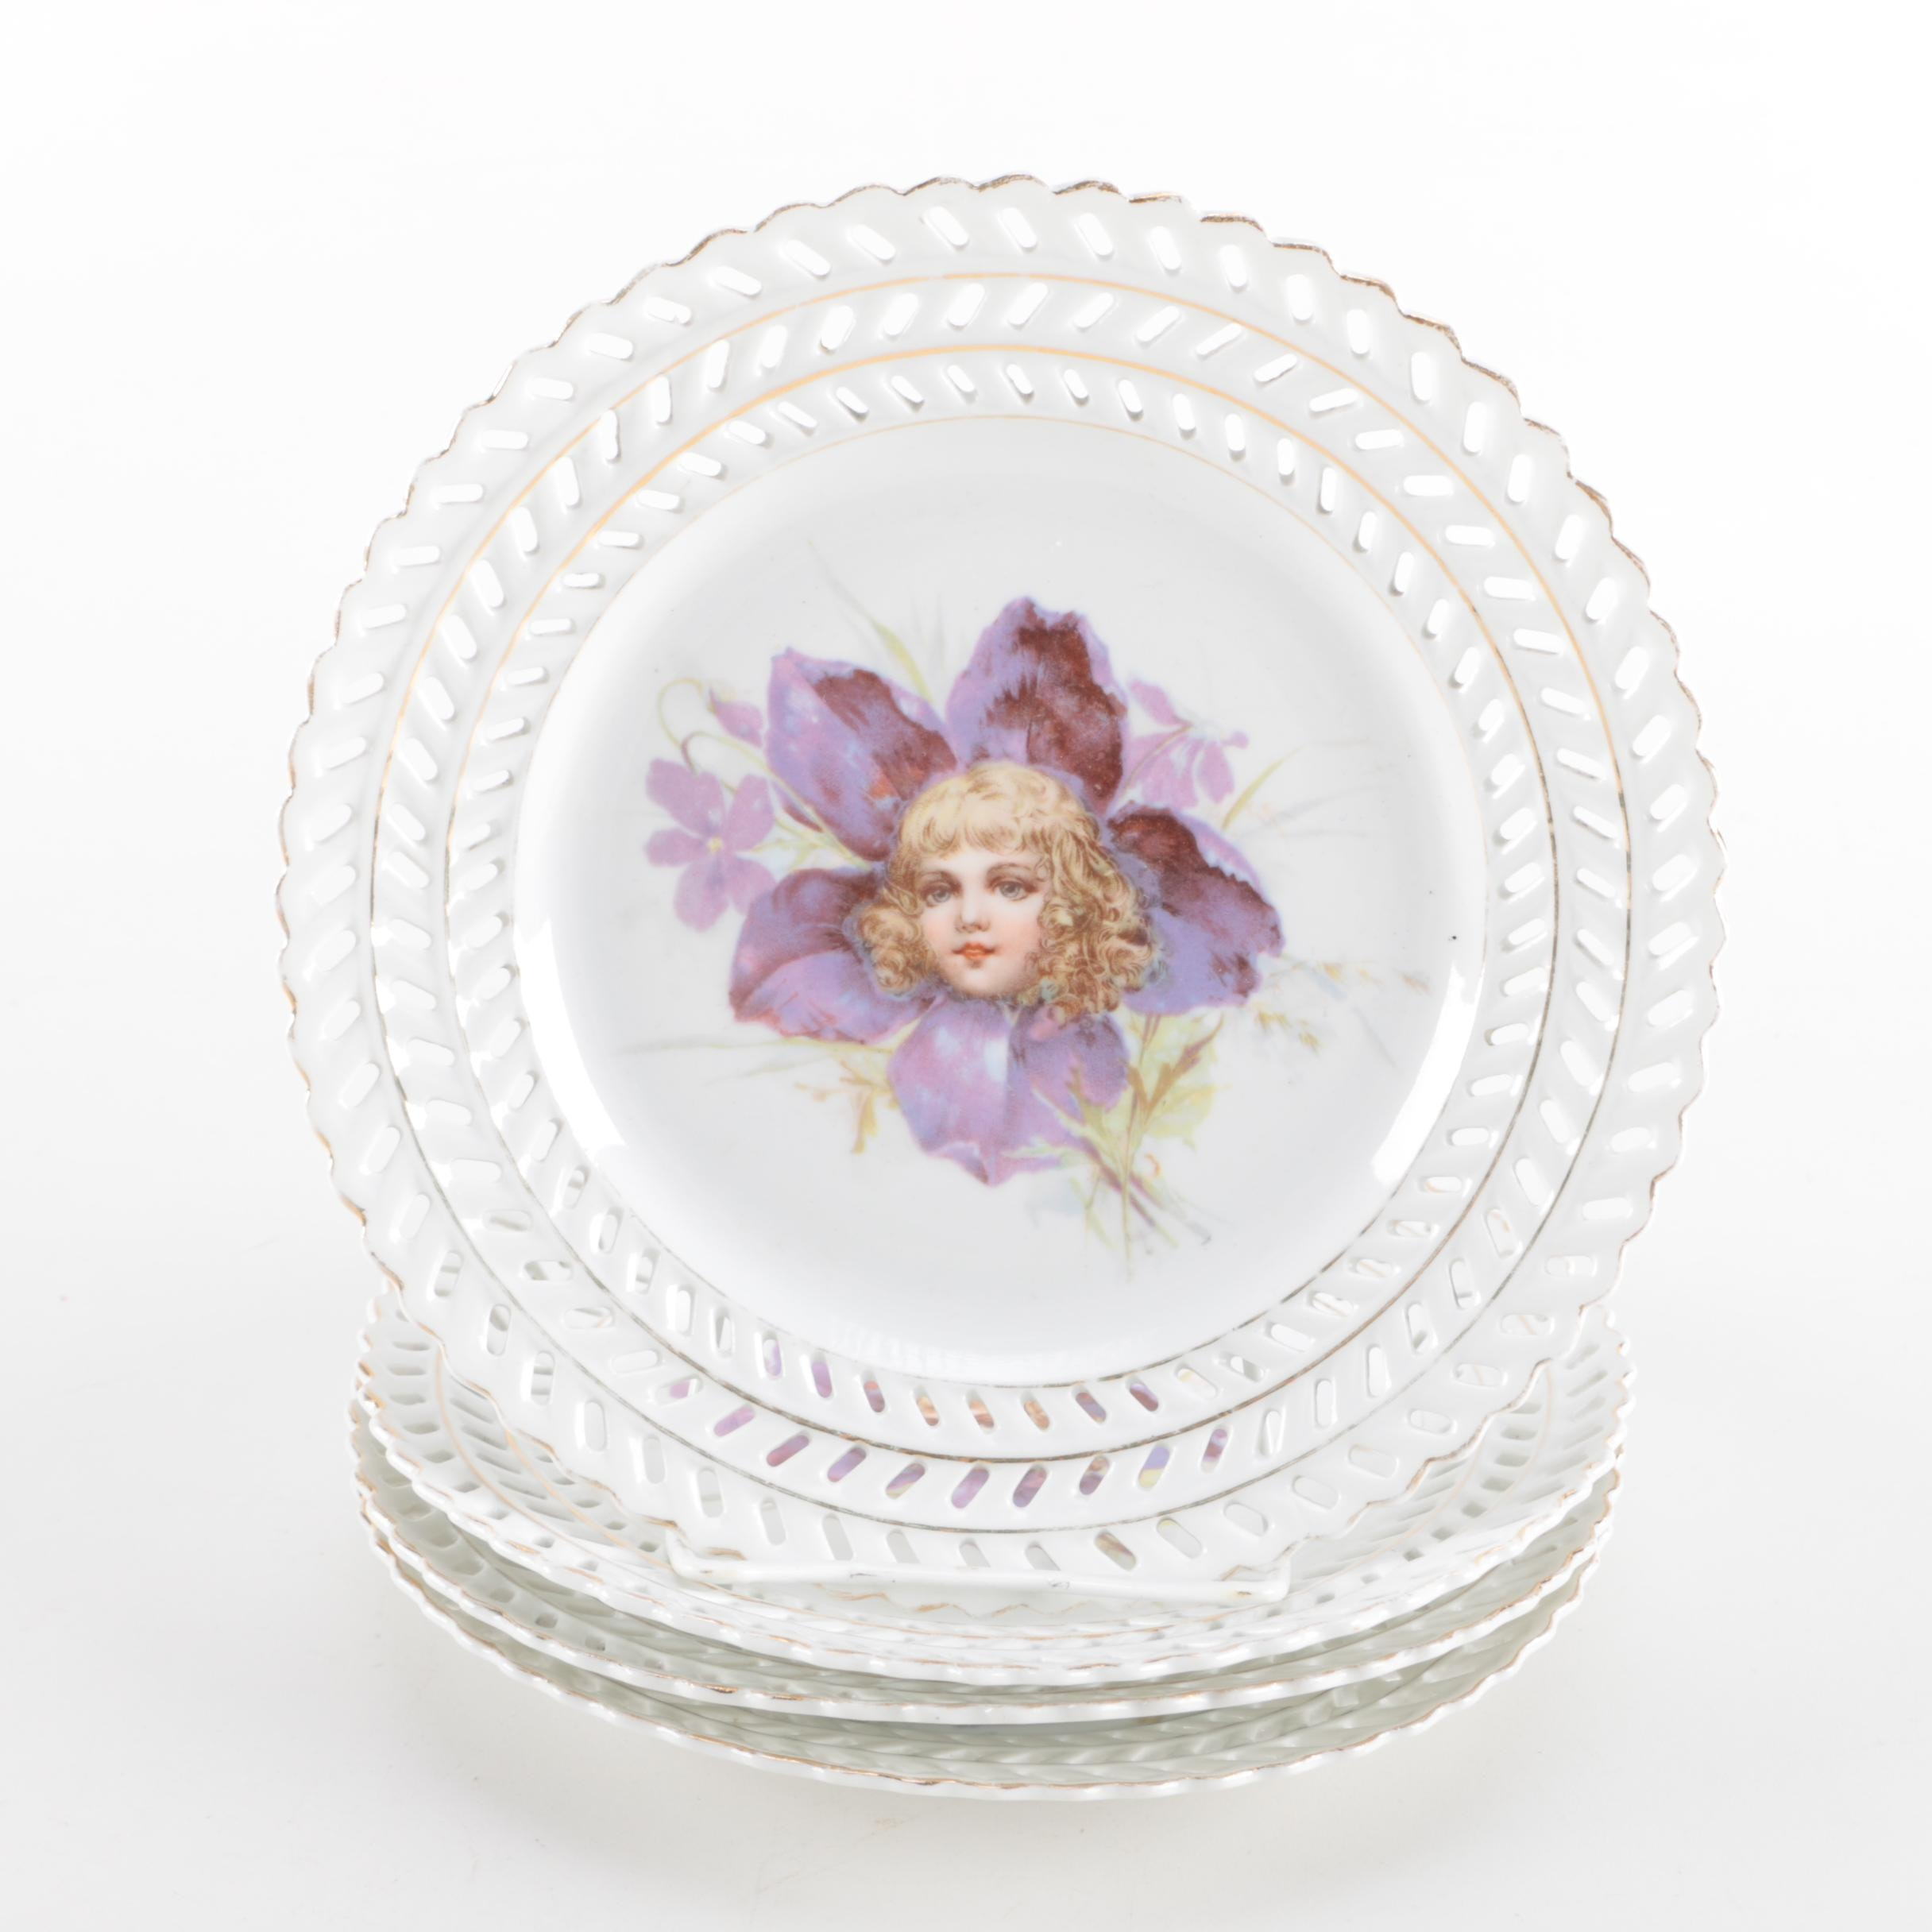 Victorian Porcelain Plates With Flower Face Colored Transfer Prints